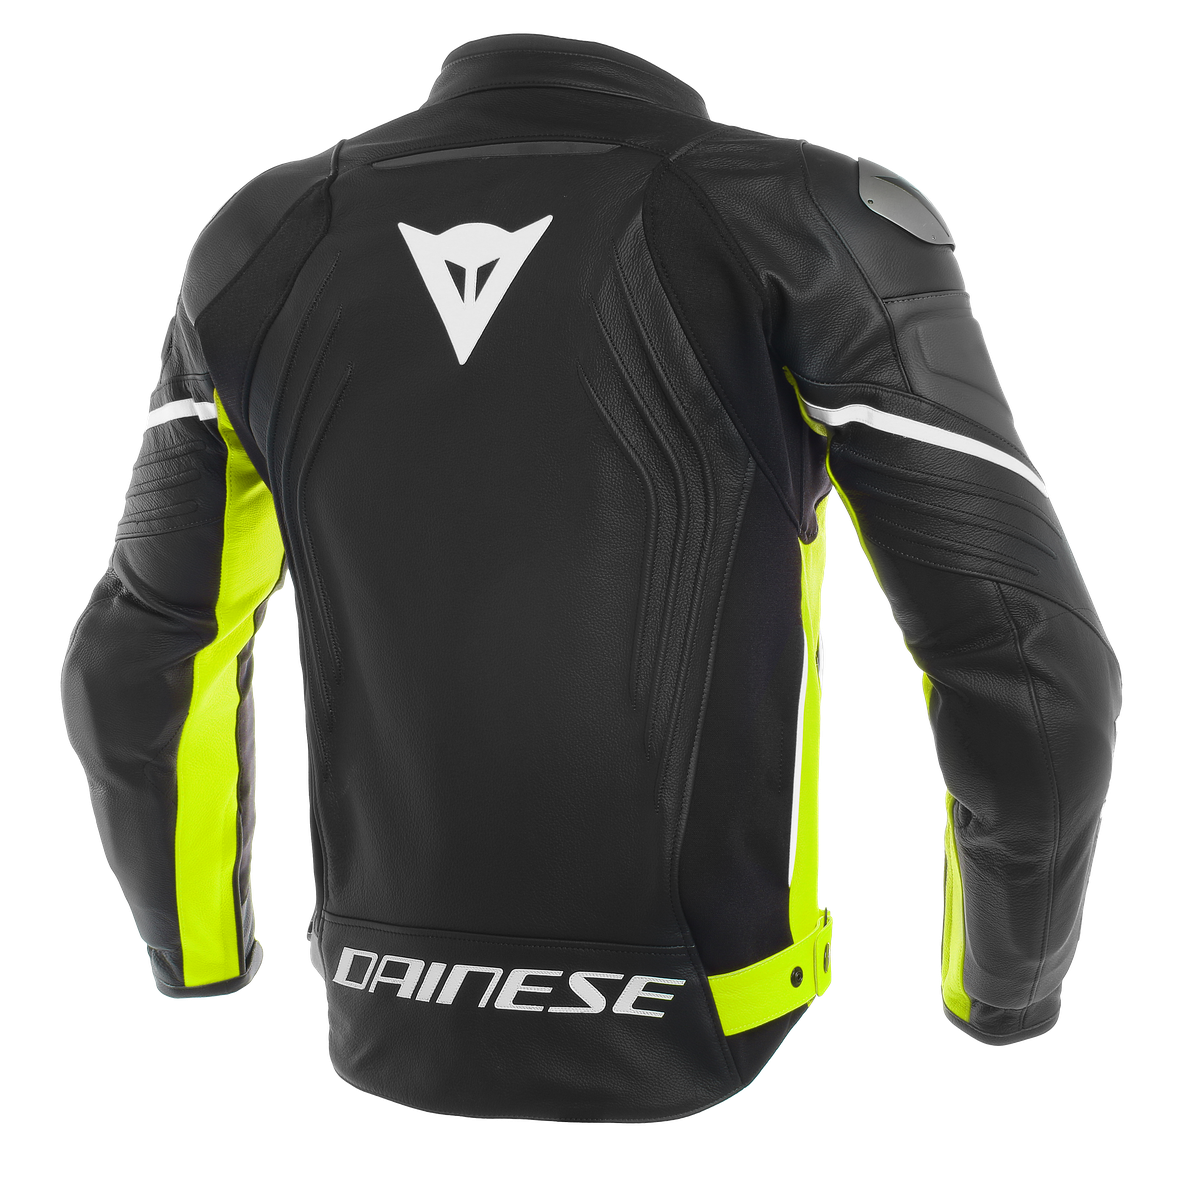 giacca pelle dainese offerta